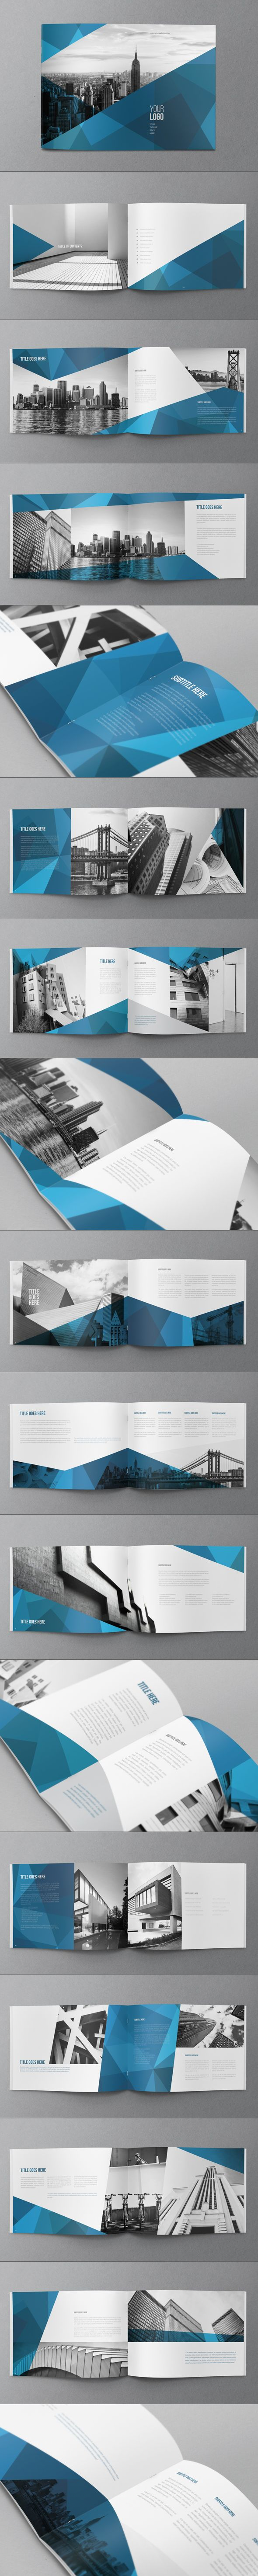 I really like the blue polygonal effect throughout the entirety of the portfolio